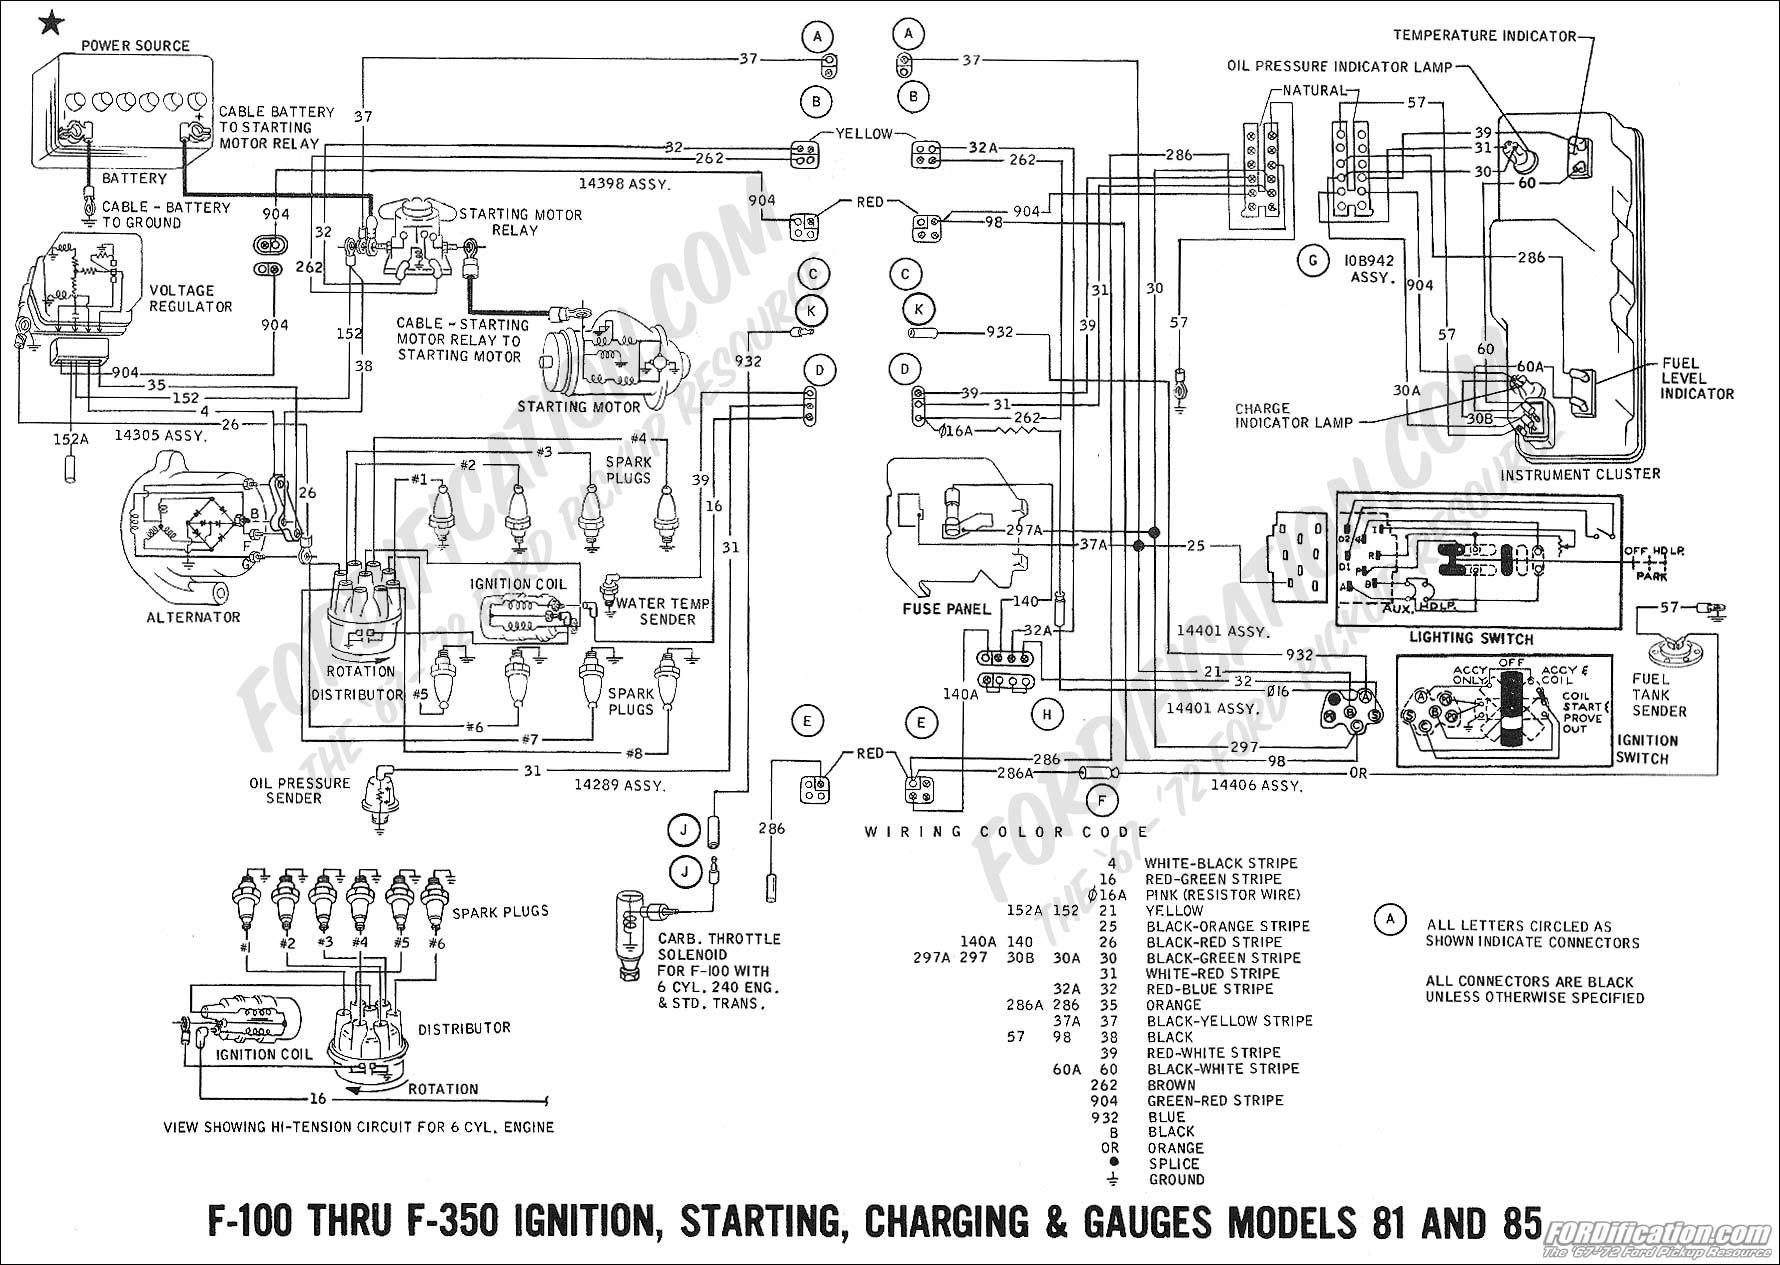 Stupendous 1969 Ford F150 Wiring Diagram Wiring Diagram B2 Wiring Digital Resources Funapmognl